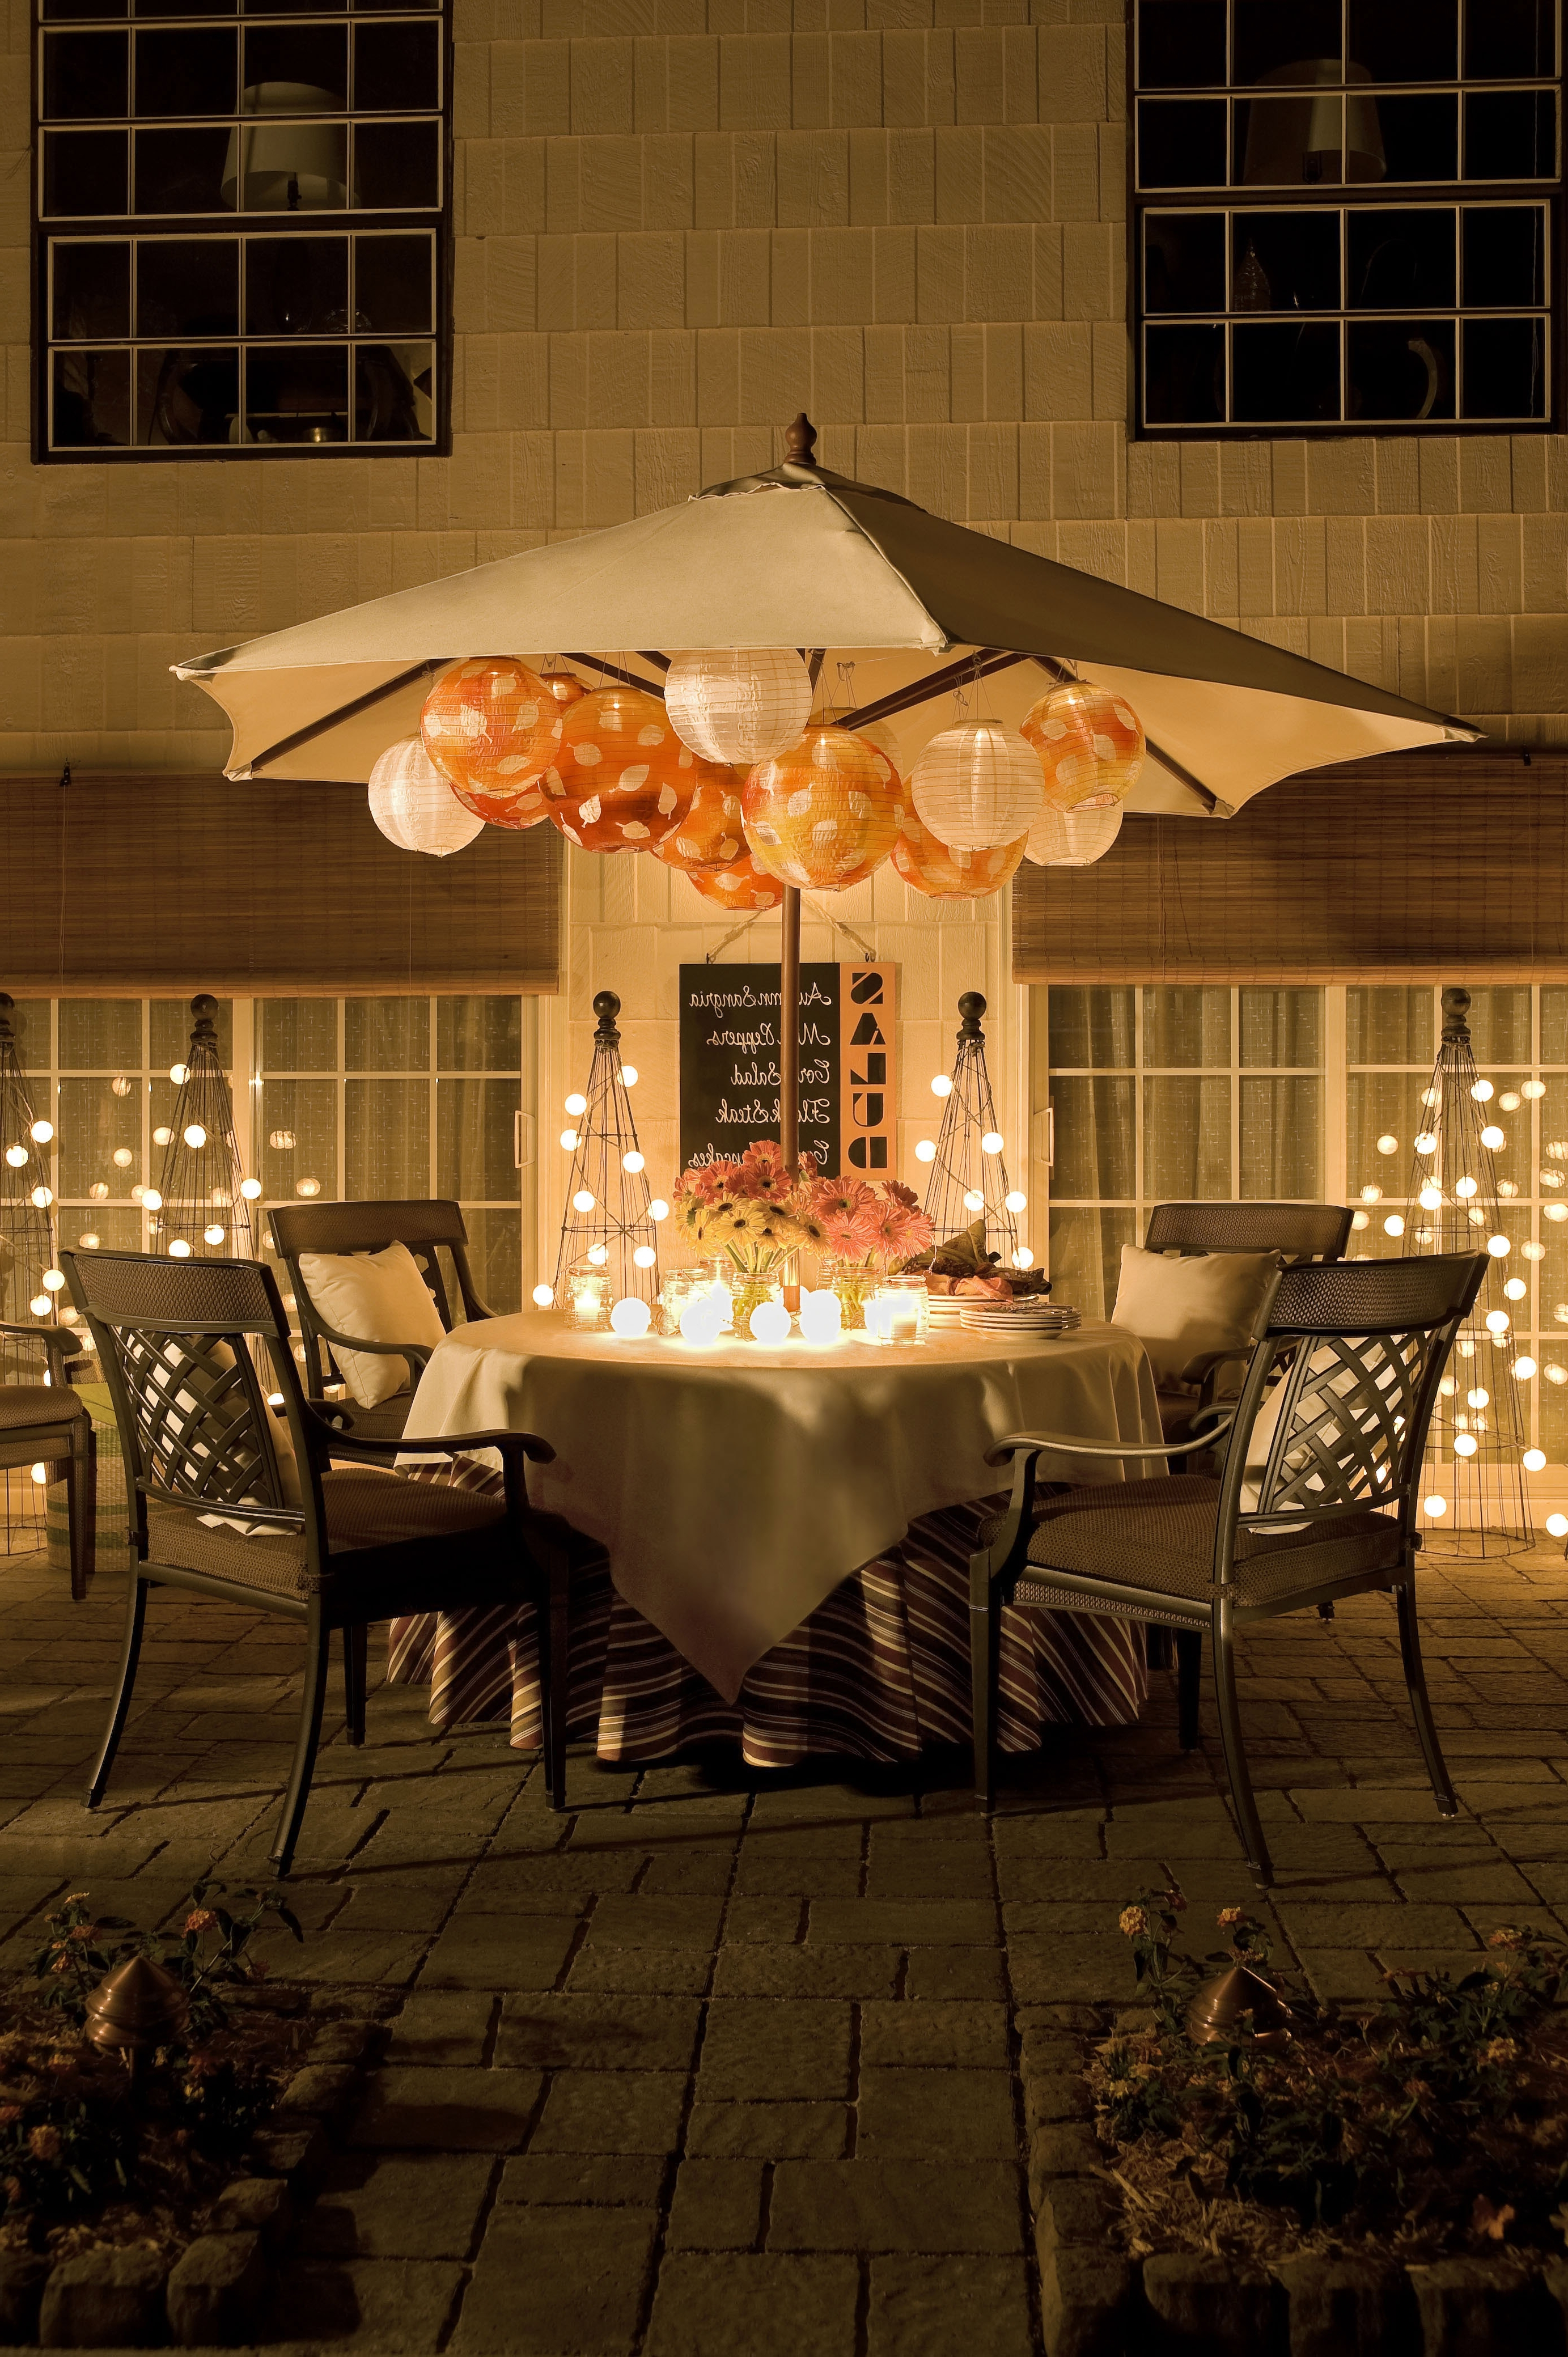 Mexican Patio Lights Awesome Lamp Patio Ideas String Patio Lights For Most Recent Outdoor Mexican Lanterns (View 10 of 20)